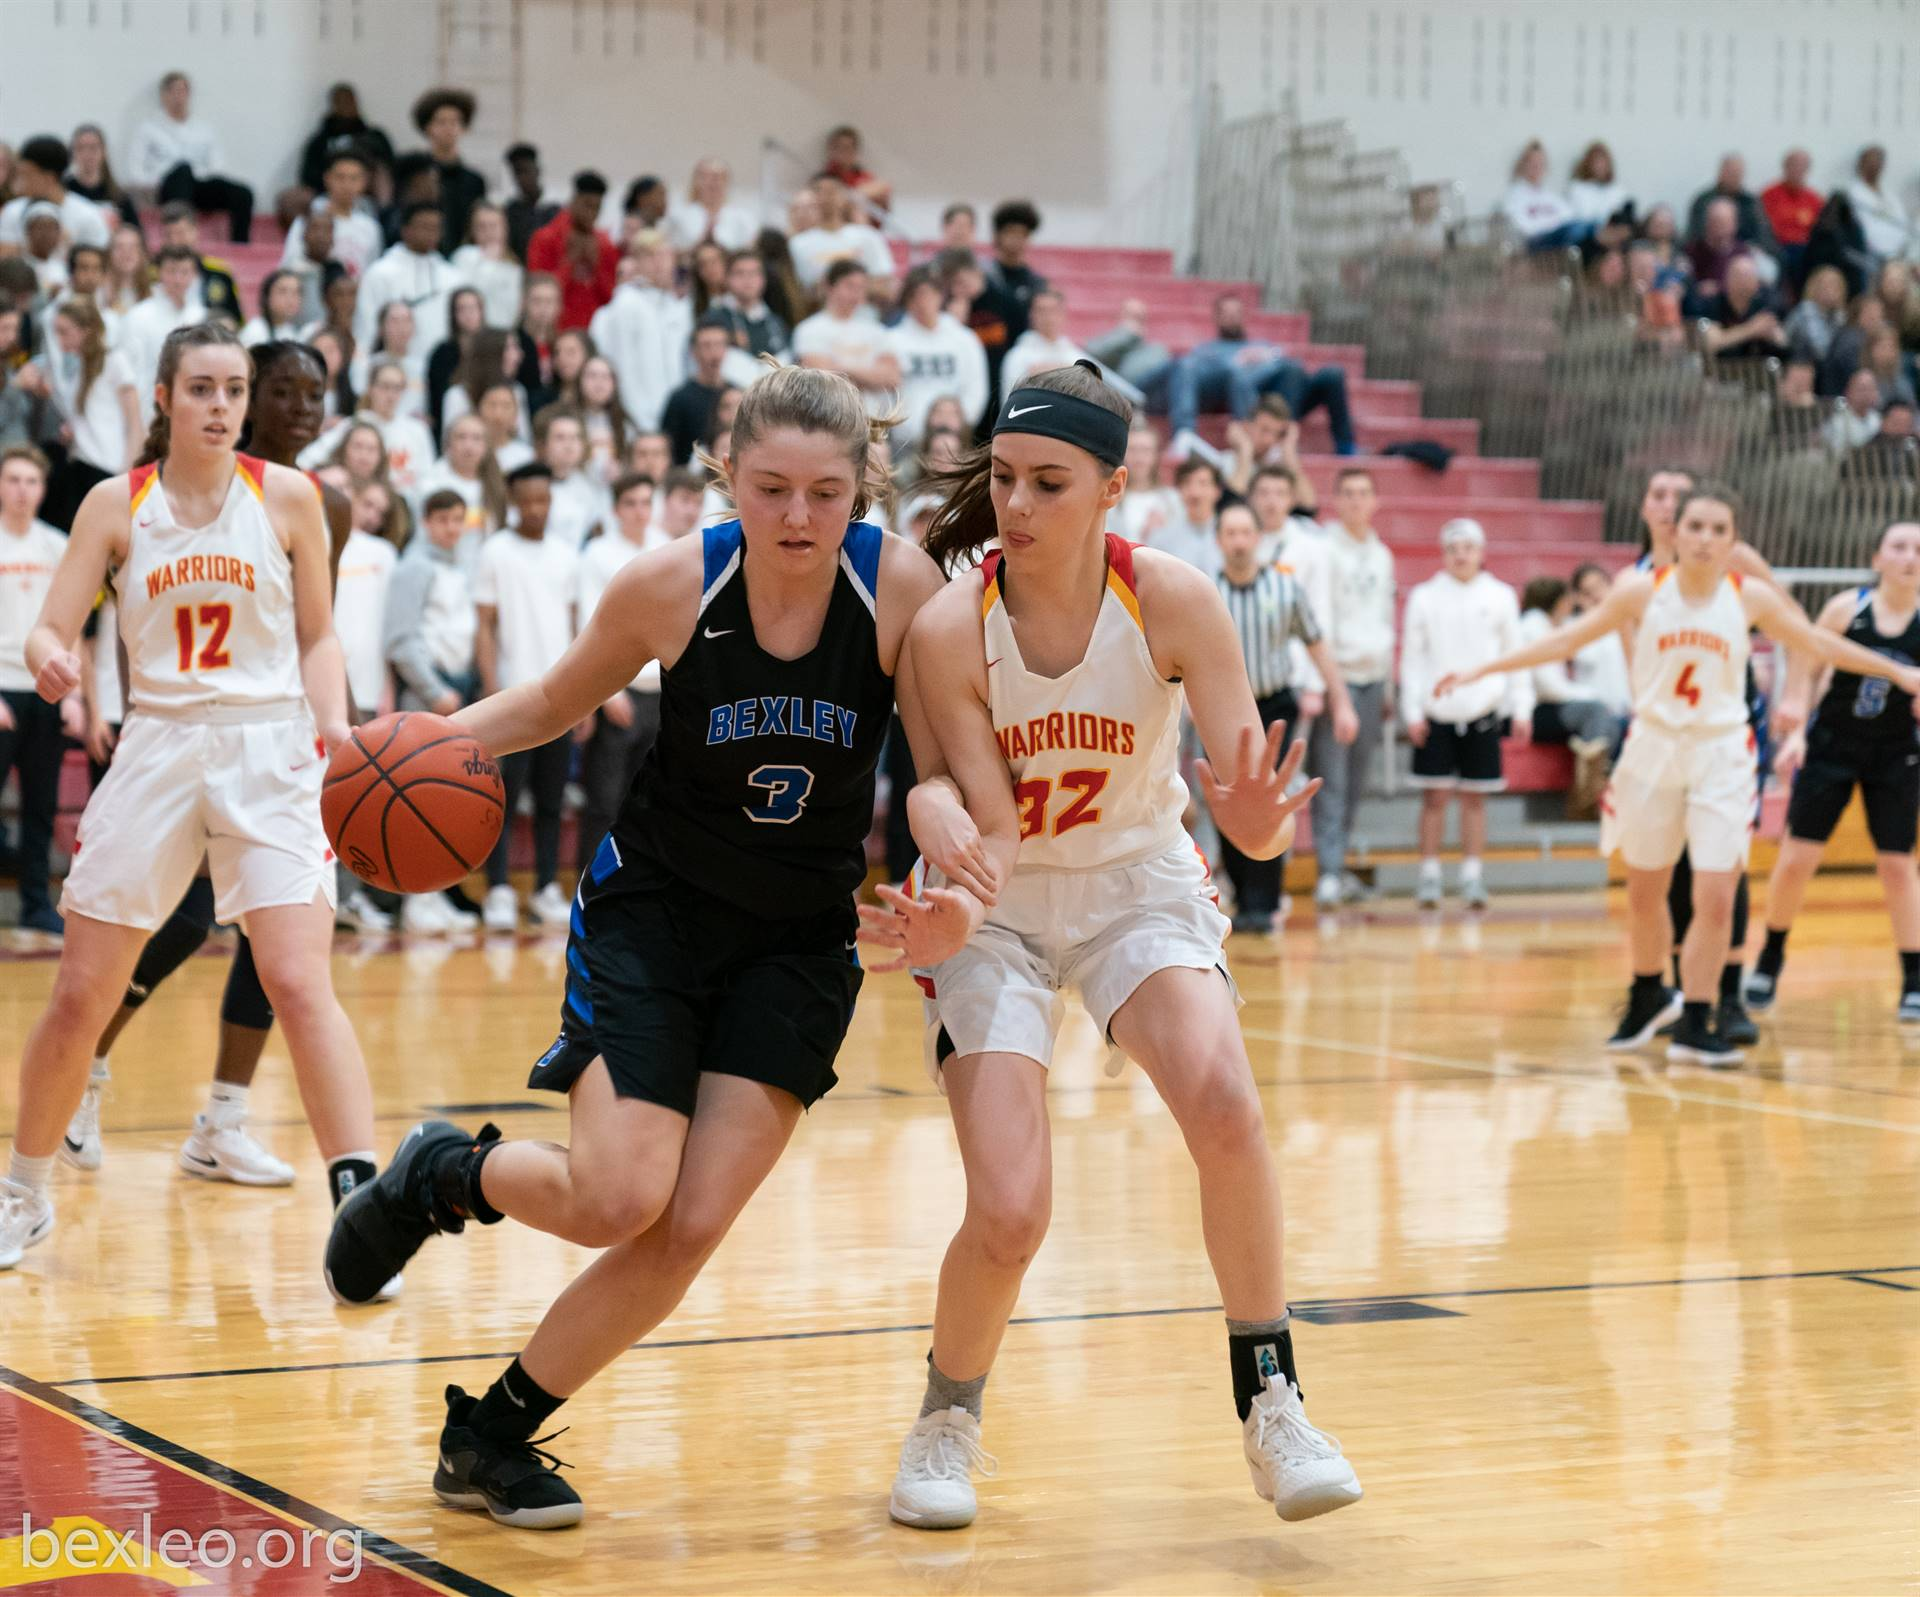 Girls Basketball Player drives baseline